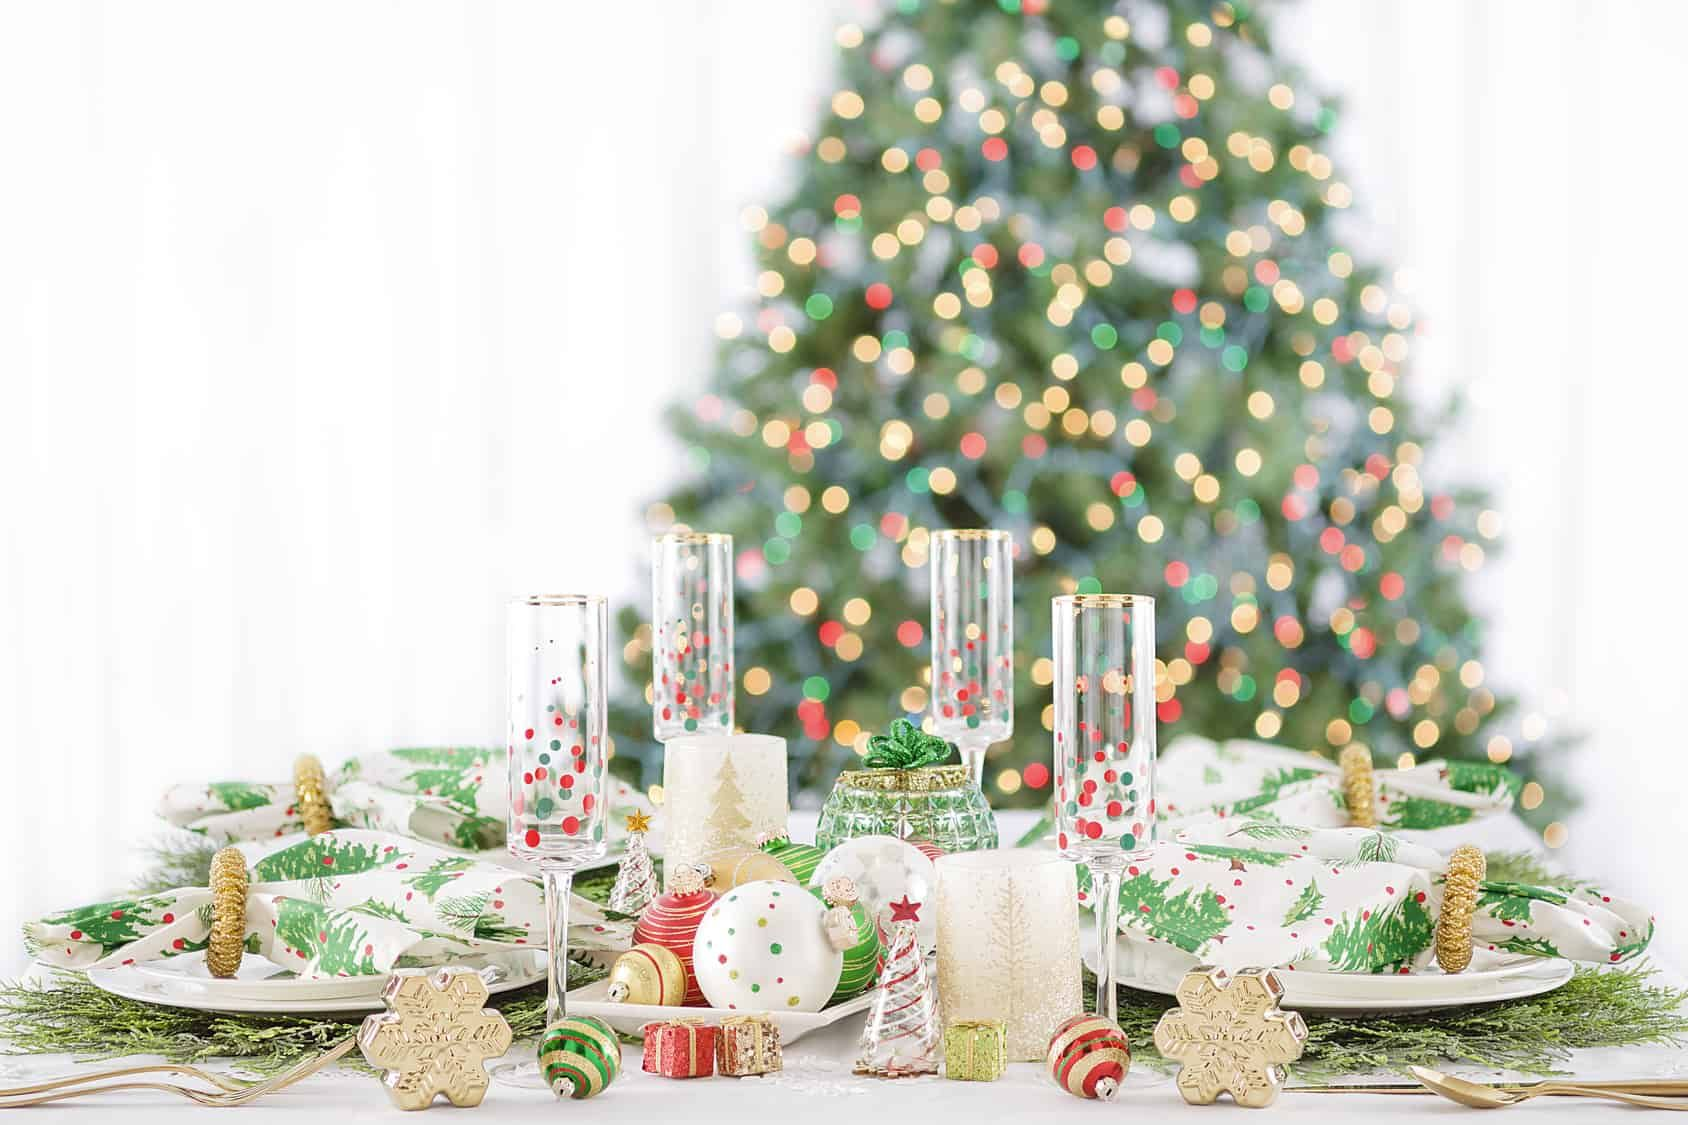 Turn your Christmas celebration up a notch by choosing an imaginative and festive theme. #christmaspartyideas #christmasparty #christmasparties #christmaspartythemes #partythemes